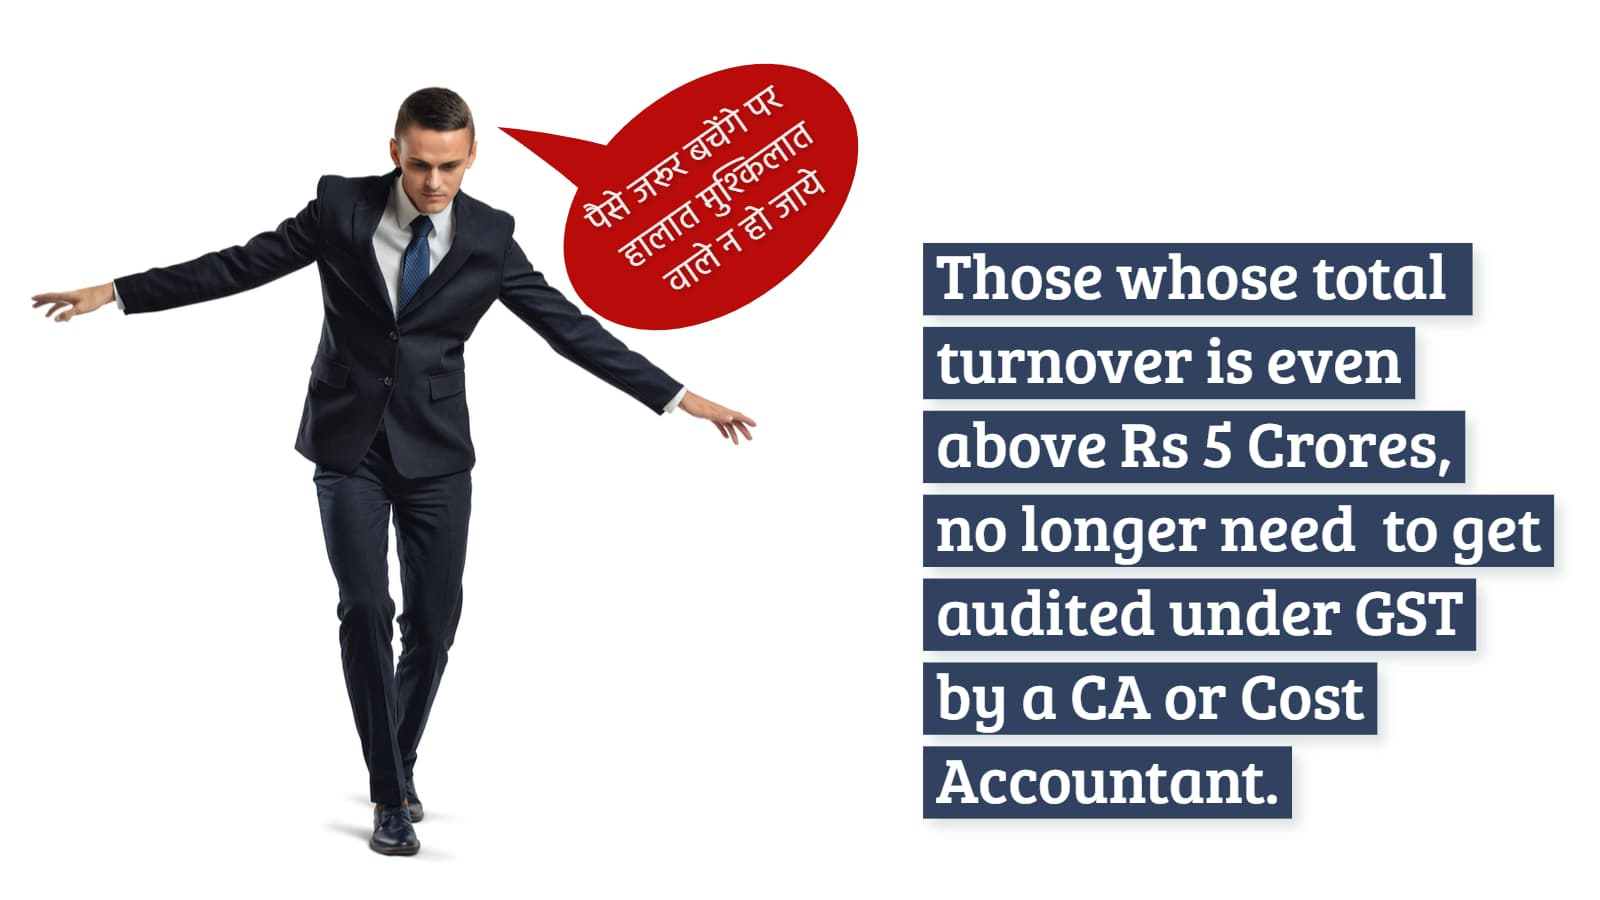 Those whose total turnover is even above Rs 5 crore no longer need to get audited under GST by a CA or Cost Accountant.